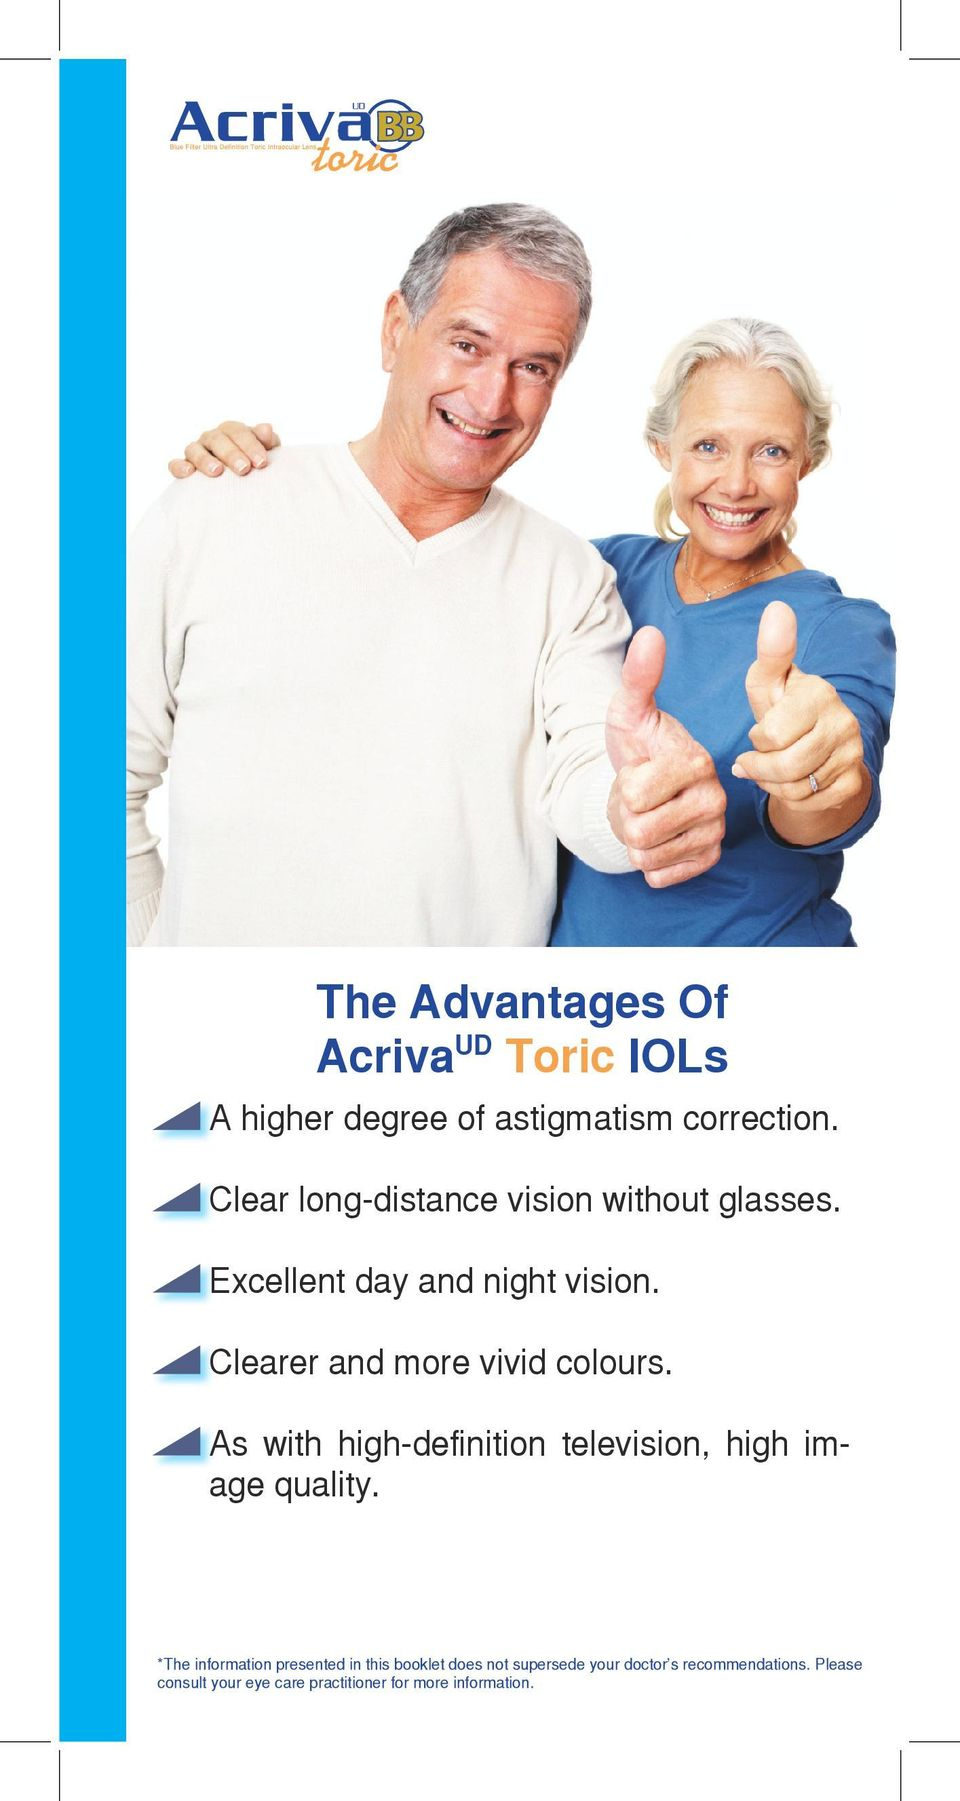 Clear long-distance vision without glasses.